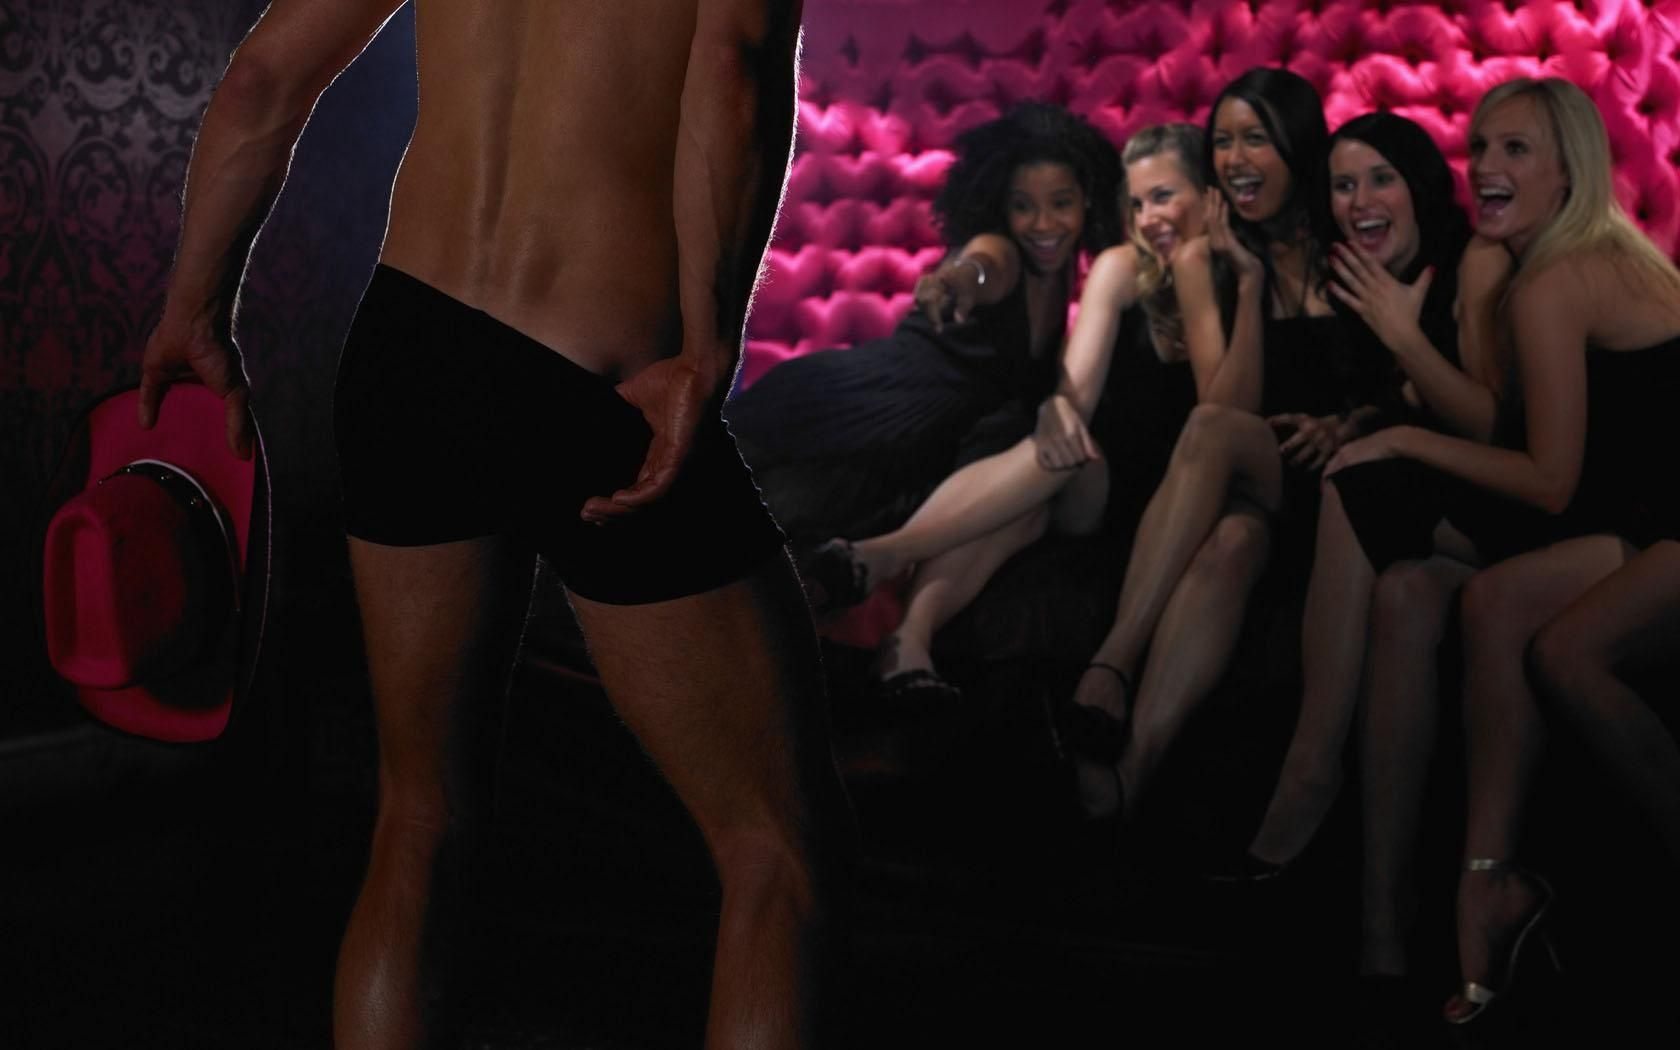 Party girls go crazy over male strippers and give out the blowjobs № 1022303  скачать